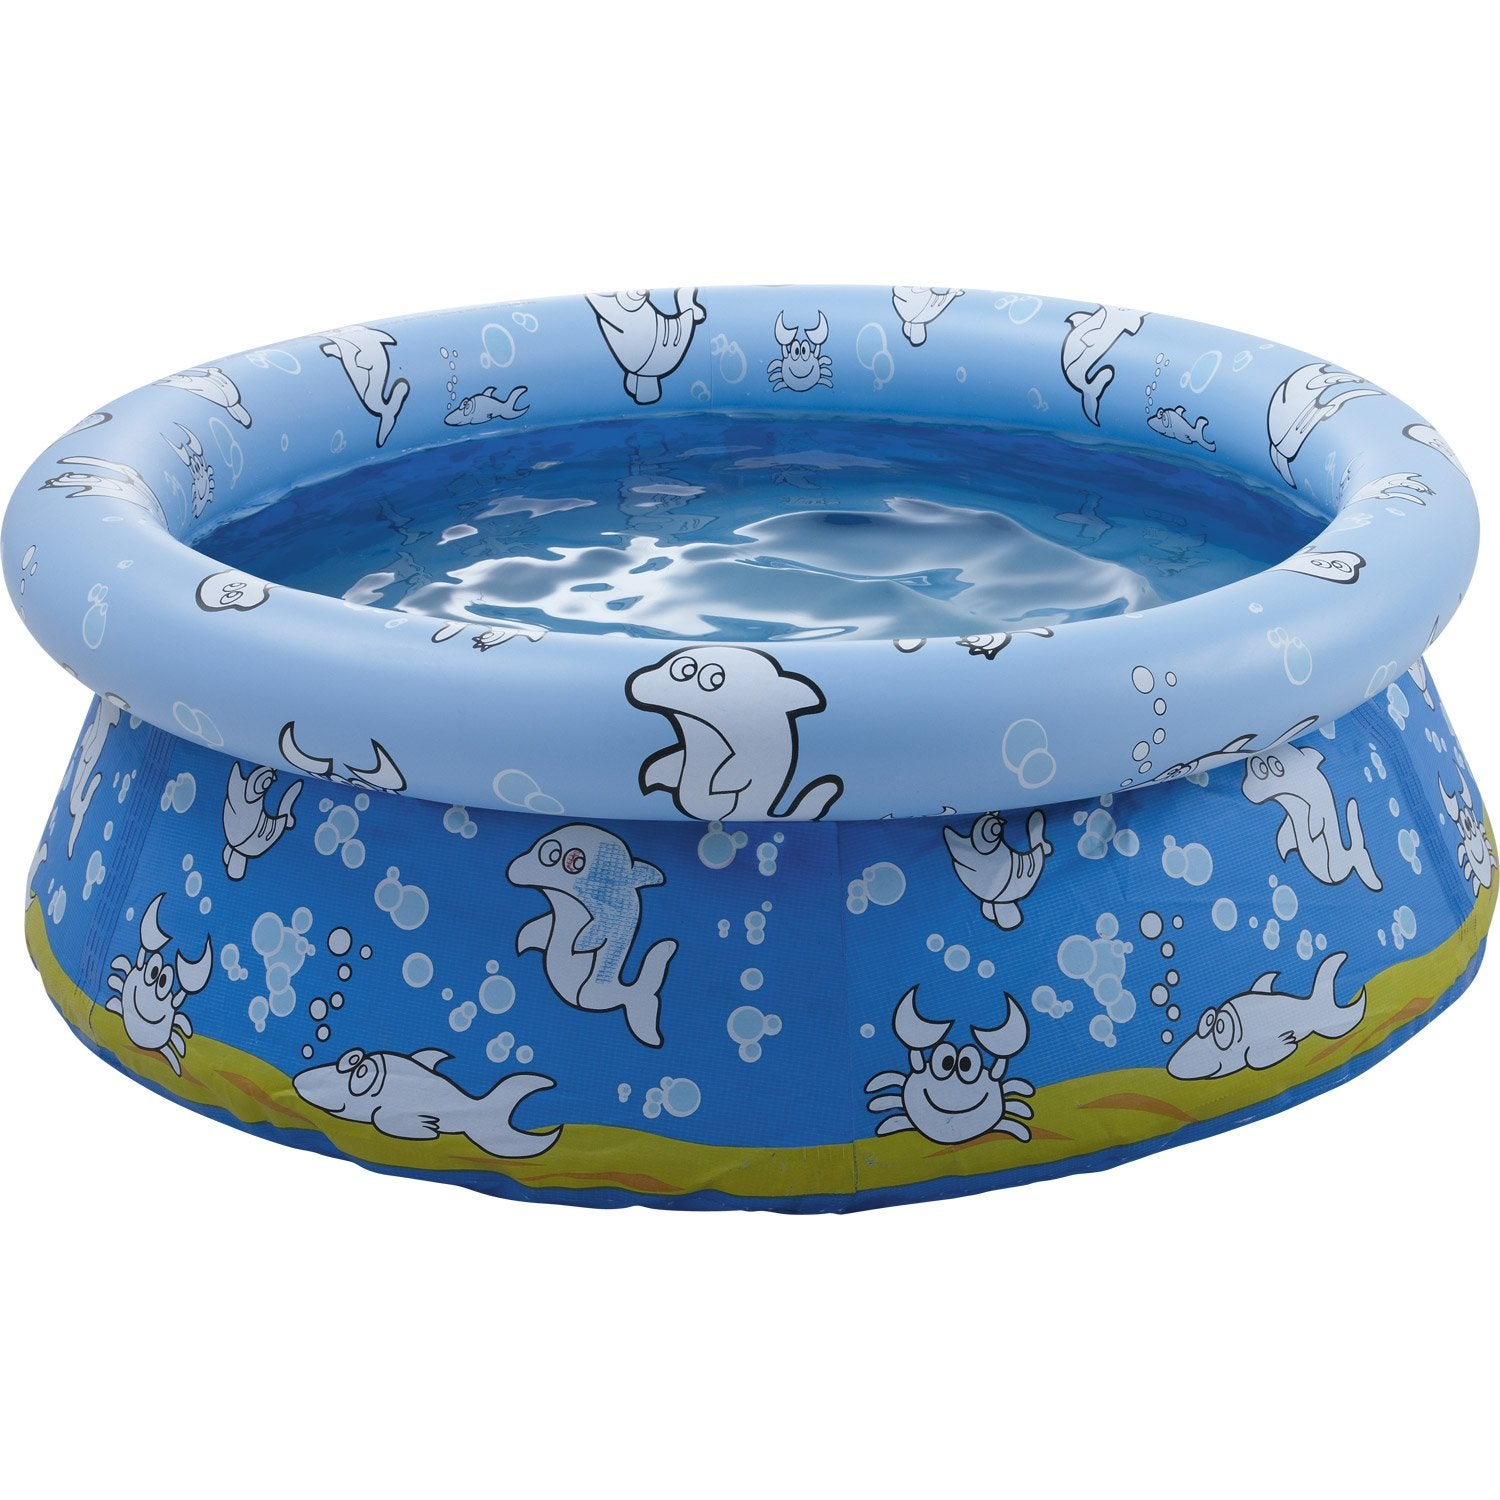 Piscine hors sol autoportante gonflable ronde diam 1 2 m for Piscine hors sol gonflable